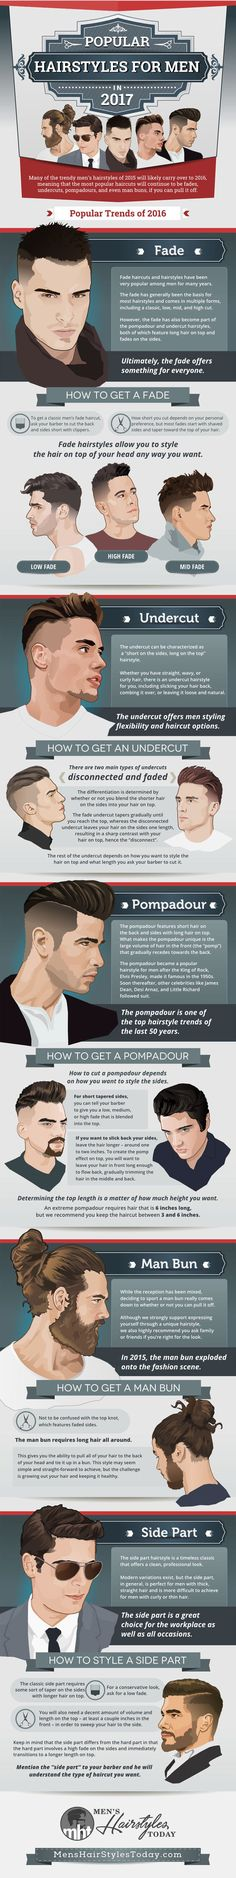 Top Men's Hairstyles 2017